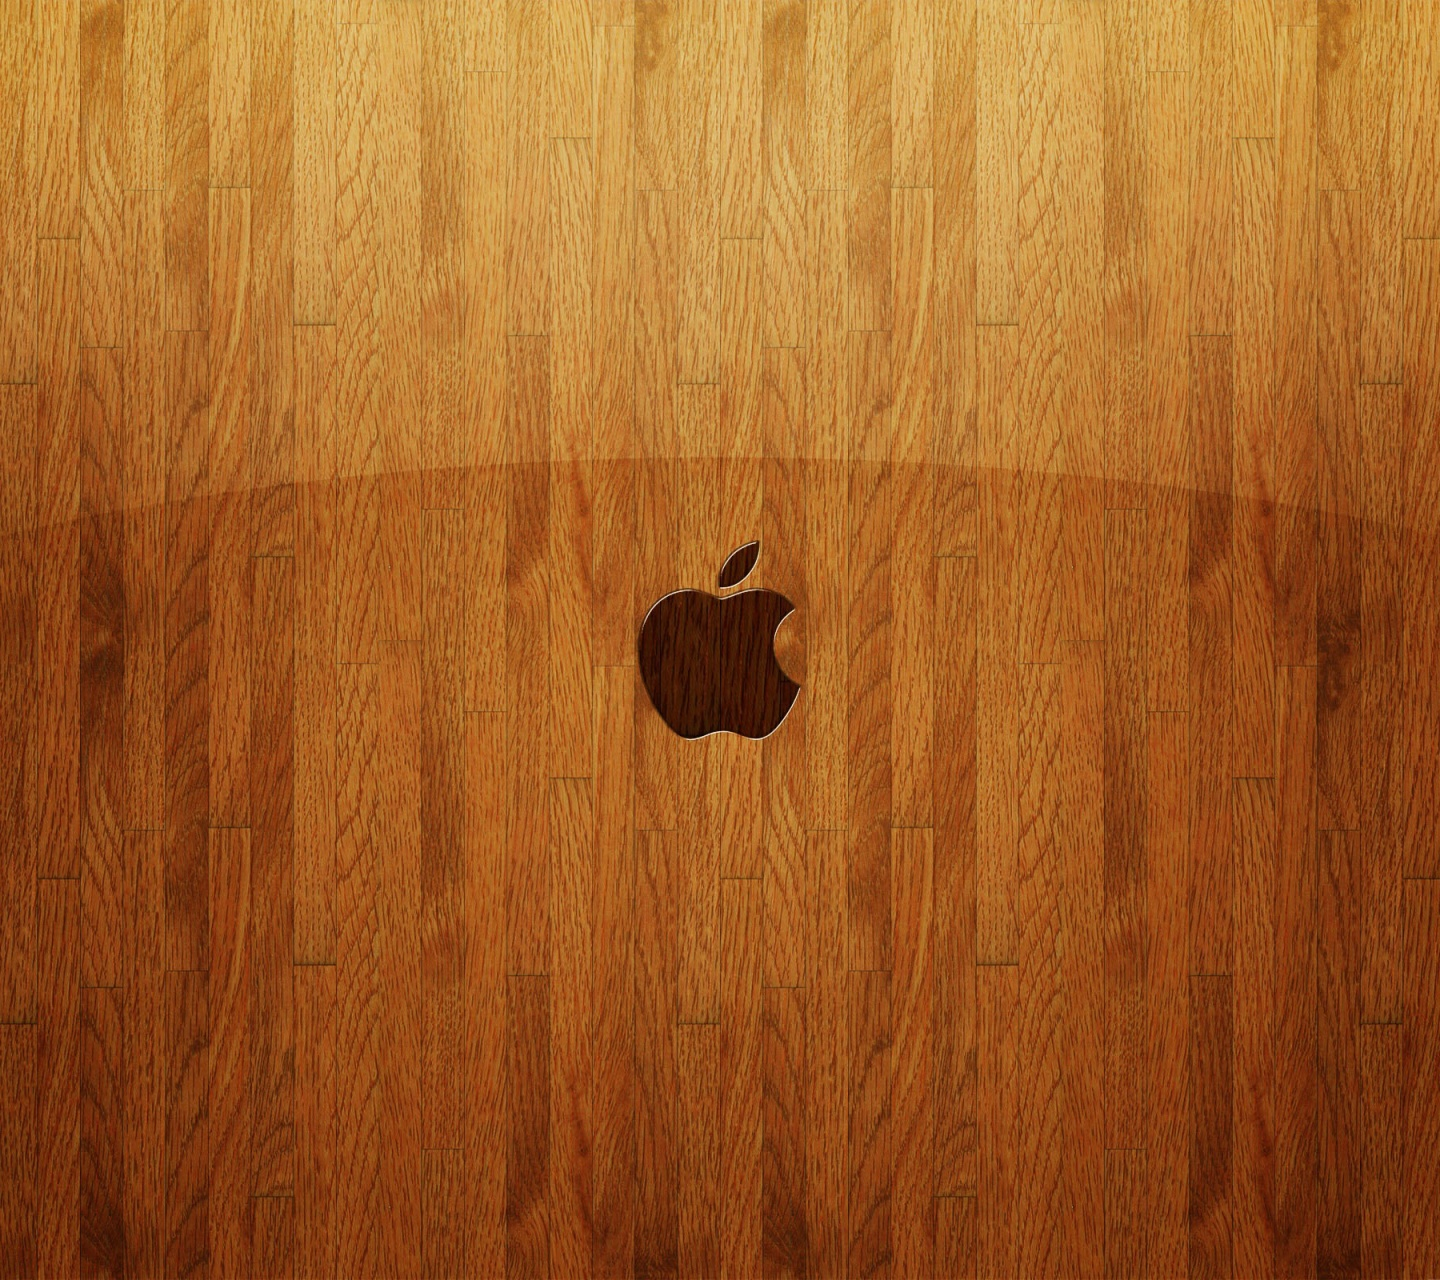 Apple Think Different Wood Background Computer